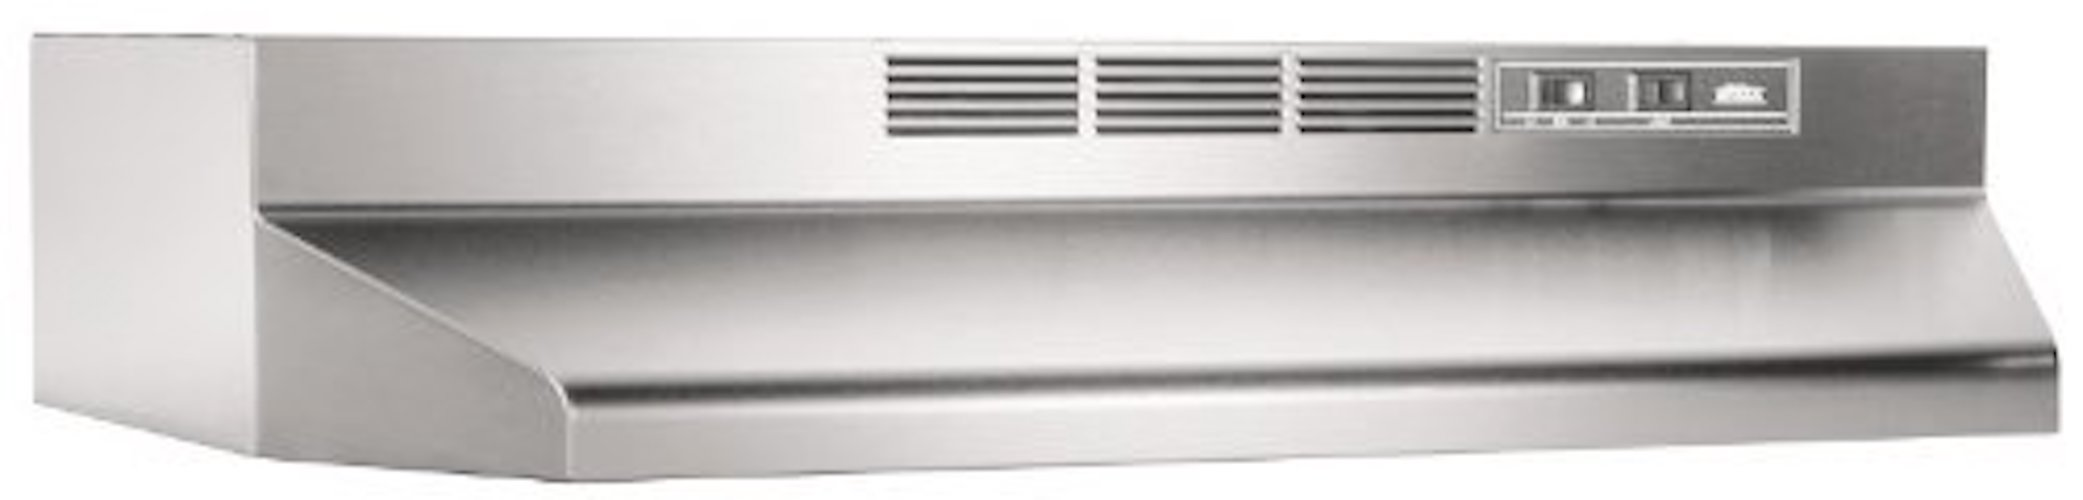 4. Broan 413004 ADA Capable Non-Ducted Under-Cabinet Range Hood